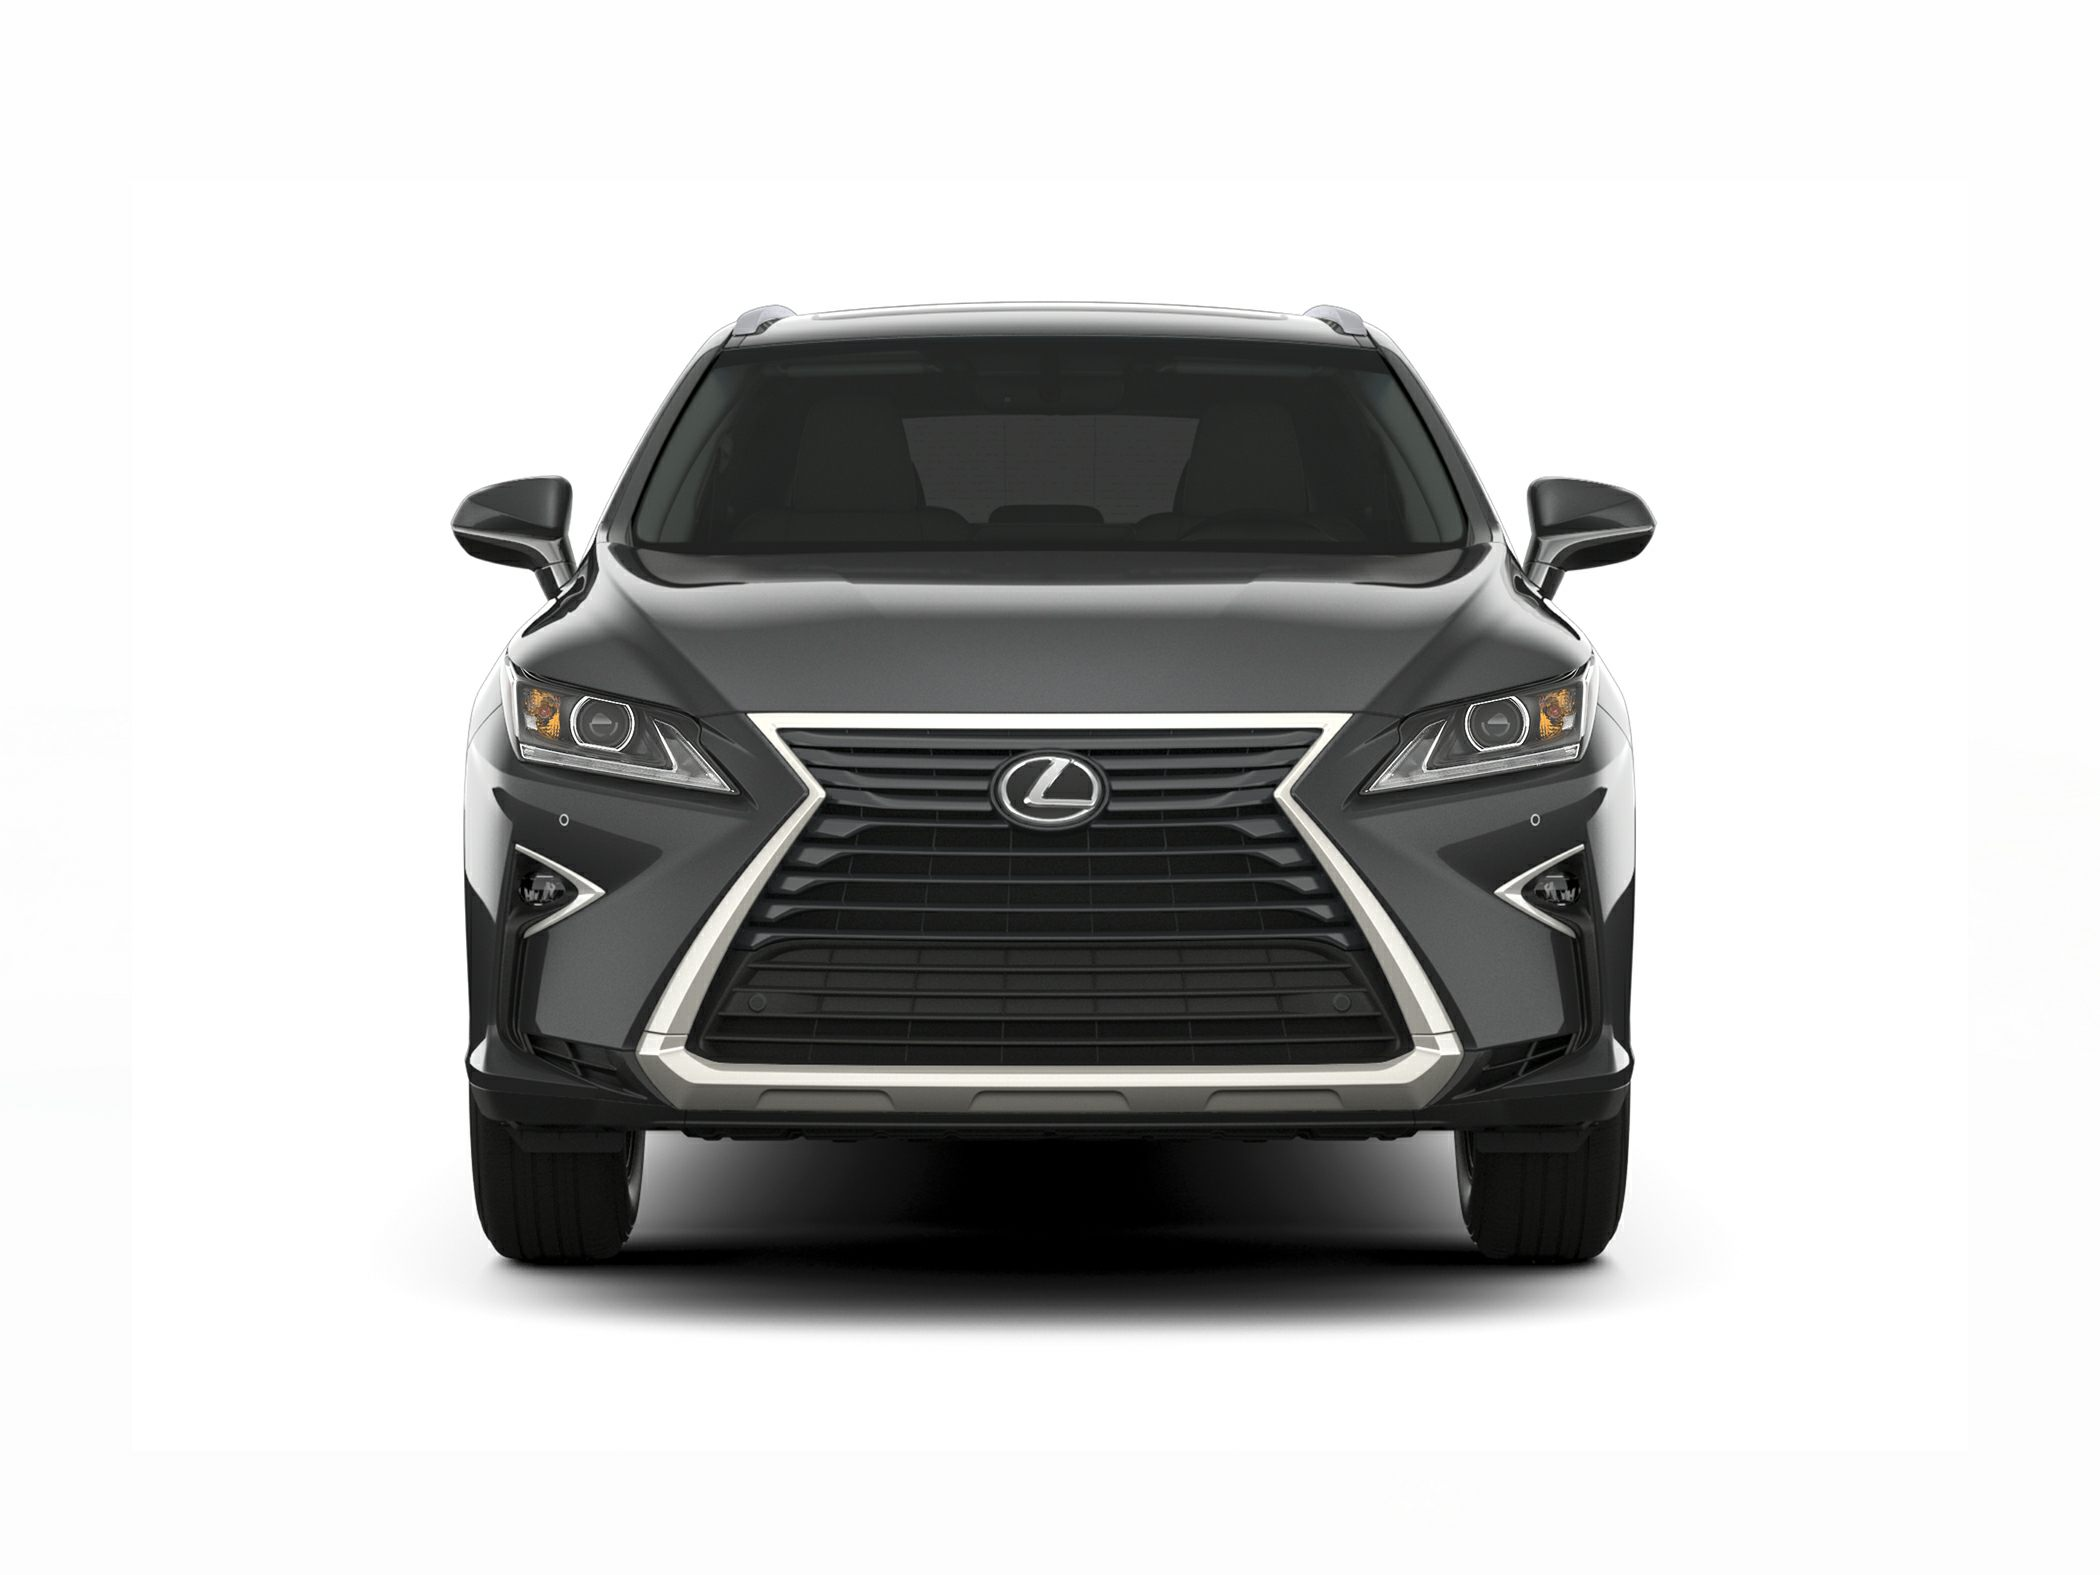 certificate auction pa lexus in ended online en auto copart salvage auctions lot harrisburg on vin carfinder rx of